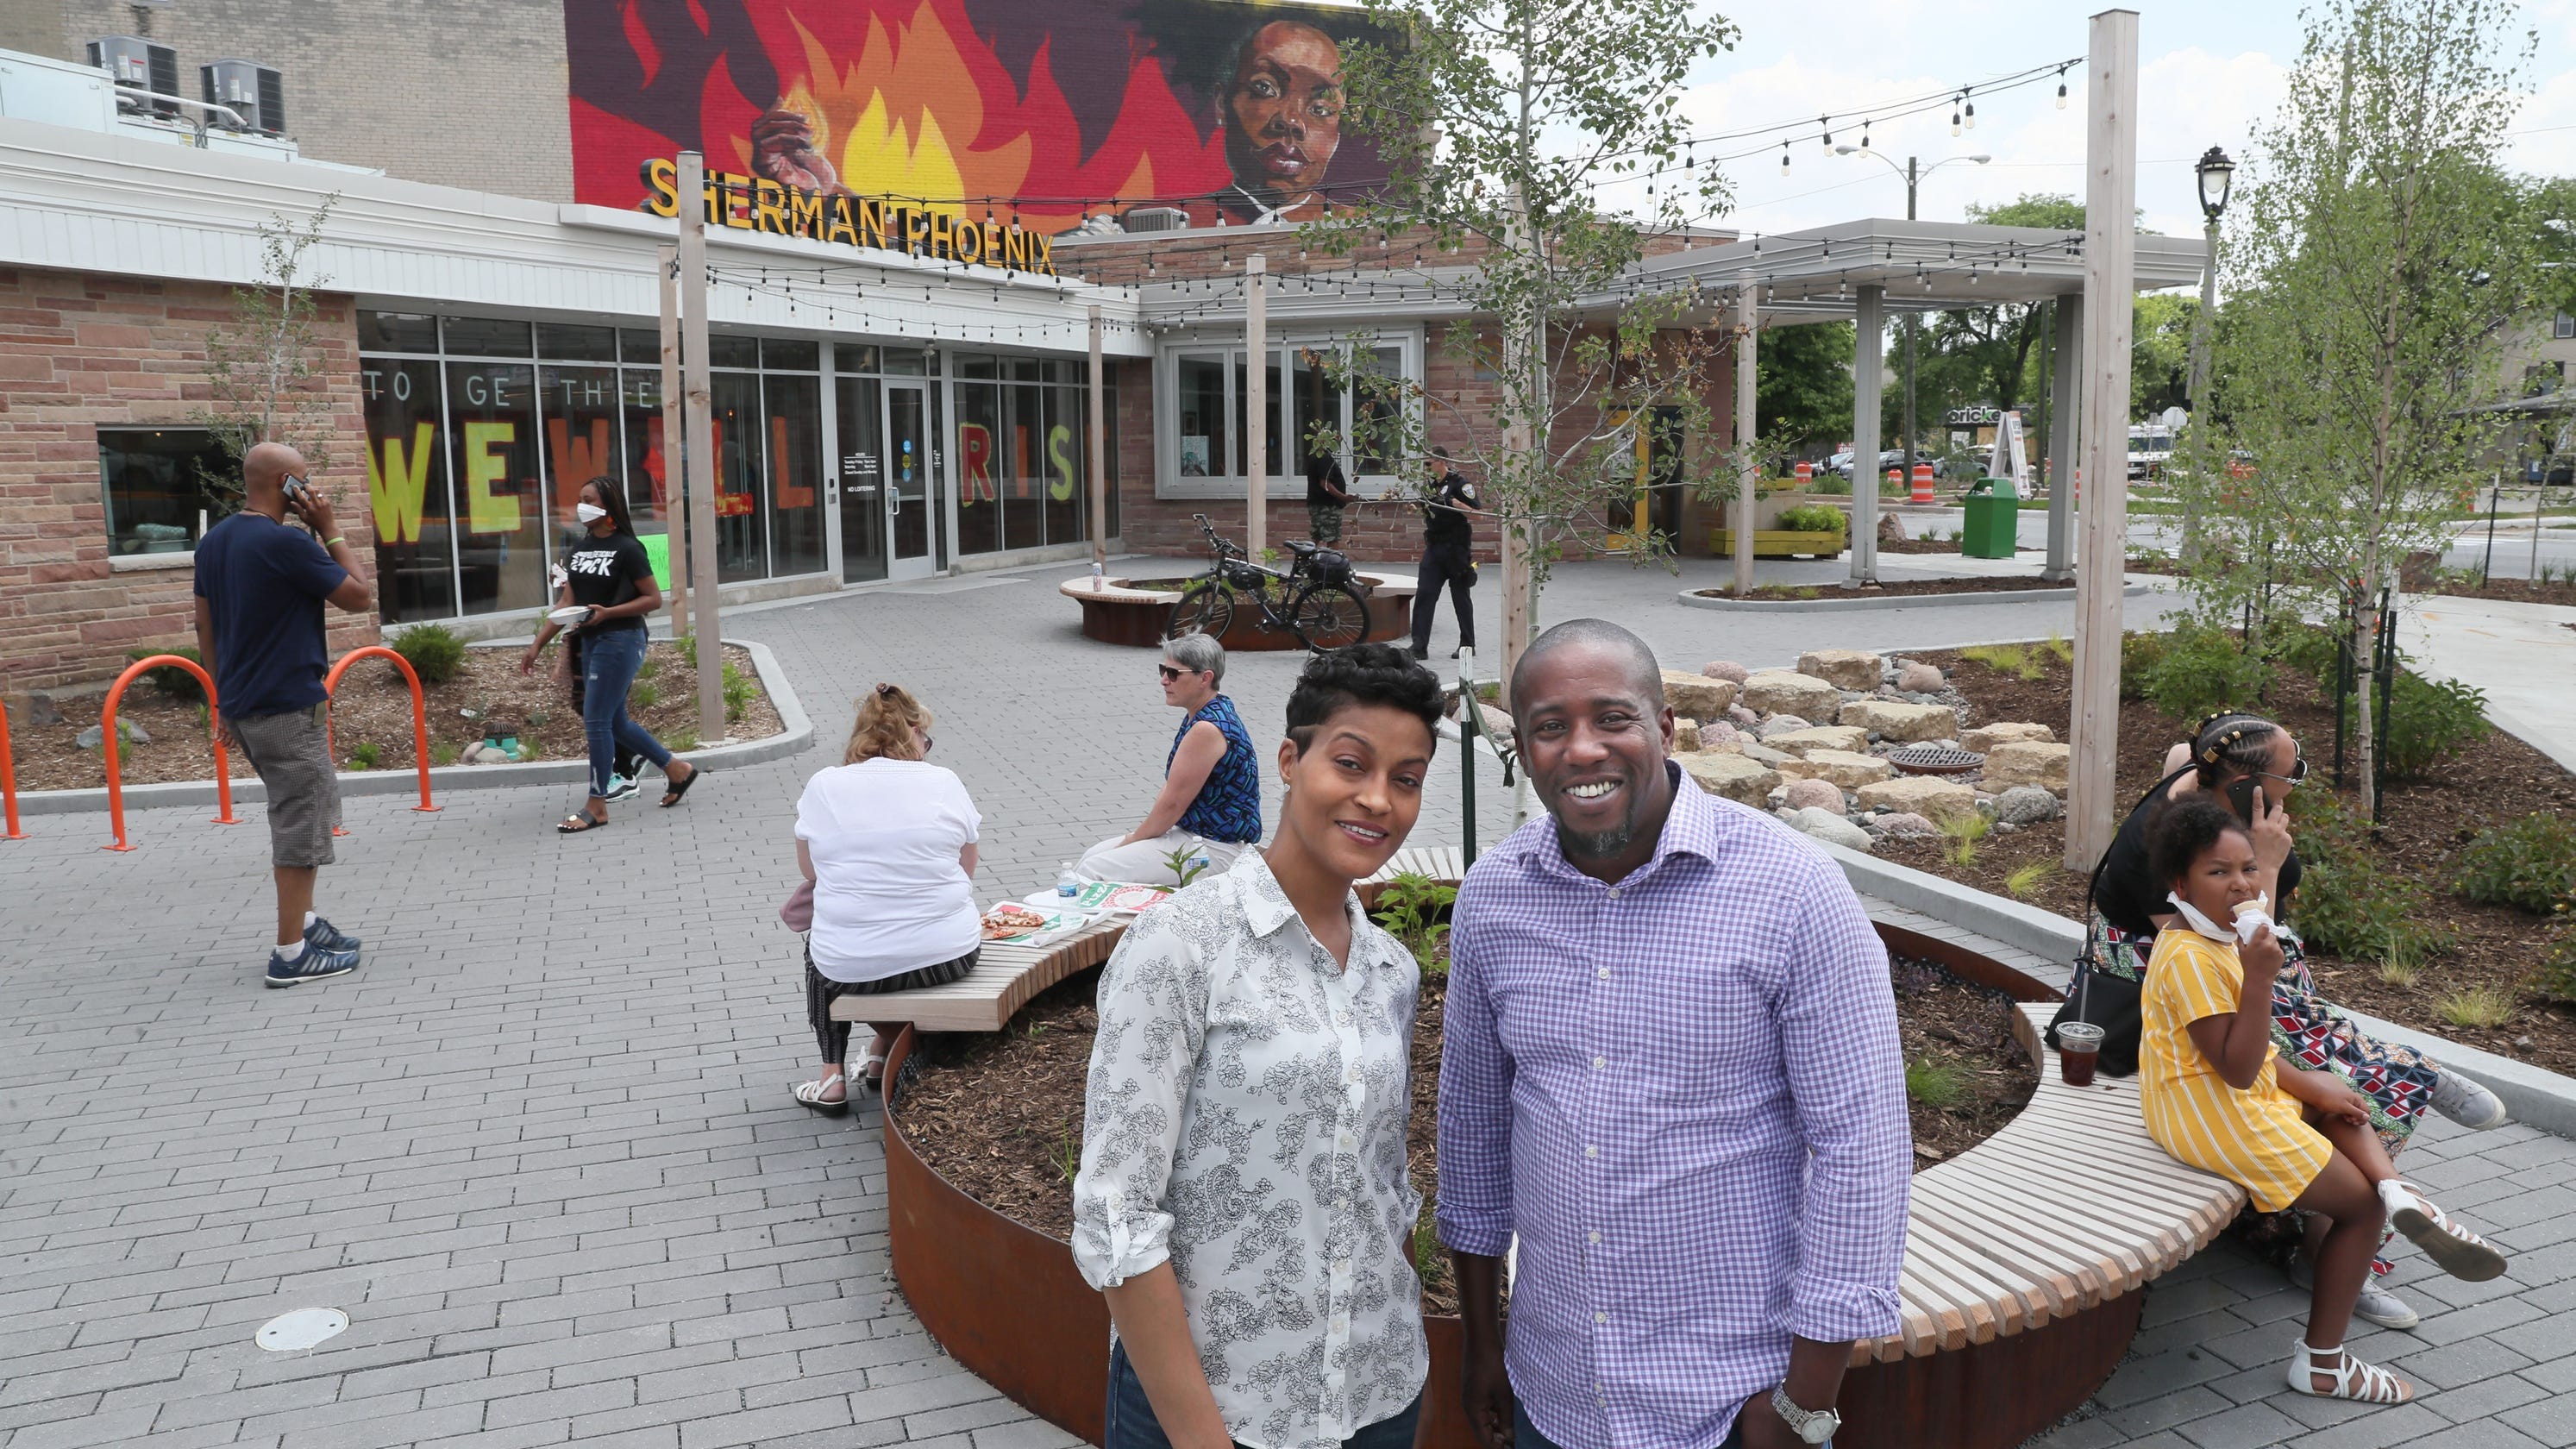 A hub for Black entrepreneurs in Wis. focuses on sustainable change